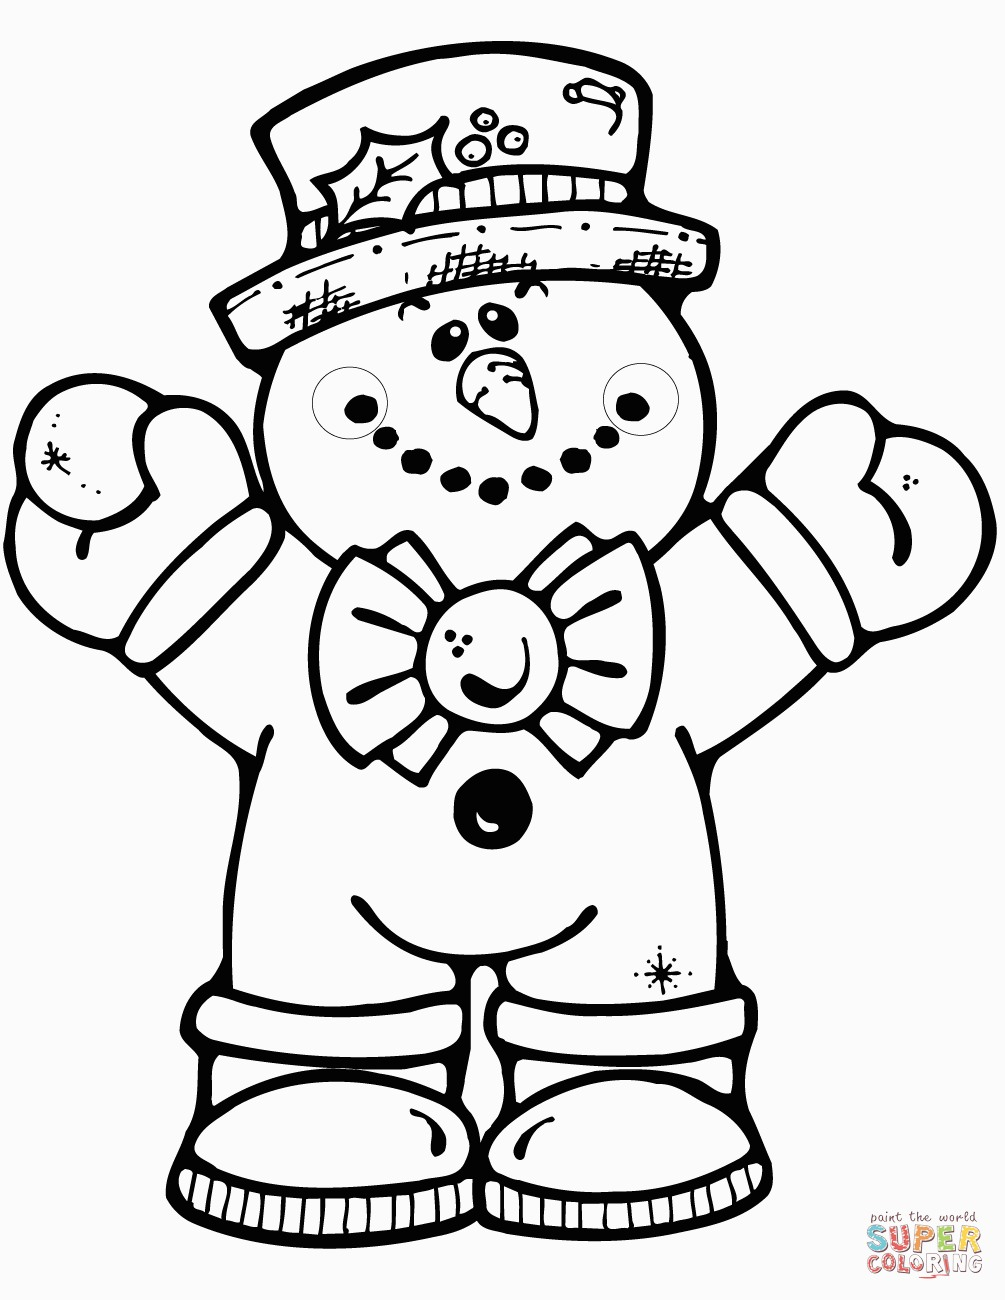 Snowmen Coloring Pages Hugging Snowman Coloring Page For Snowman To Color Printable